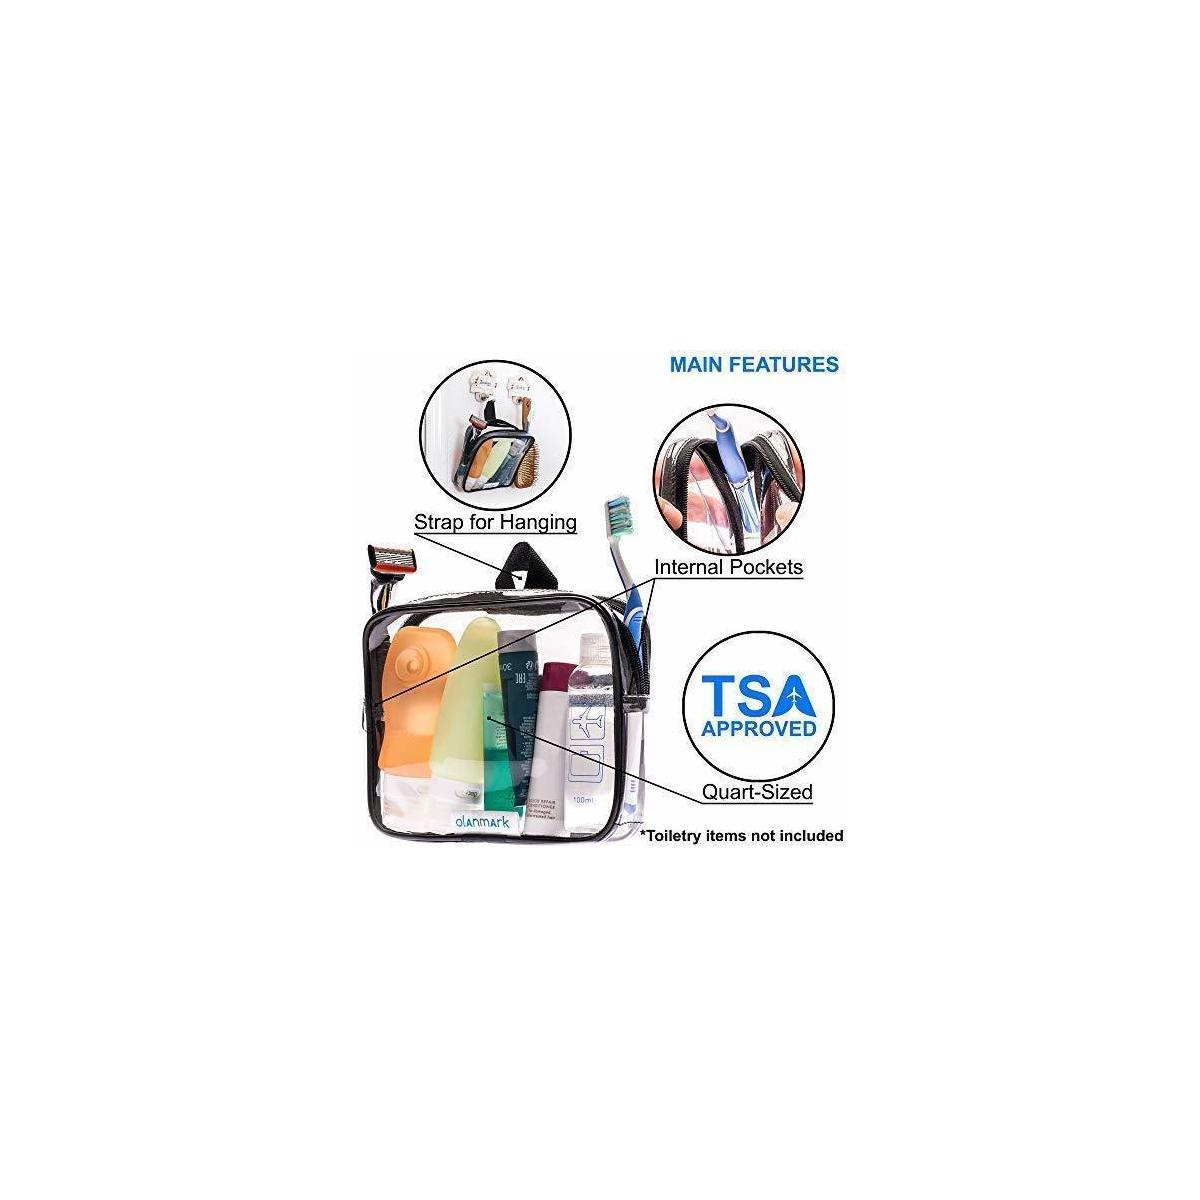 TSA Approved Toiletry Bag 3-1-1 Clear Travel Cosmetic Bag with Handle - Quart Size Bag with Zipper - Carry-on Luggage Clear Toiletry Bag for Liquids - Airport Airline TSA Compliant Bag